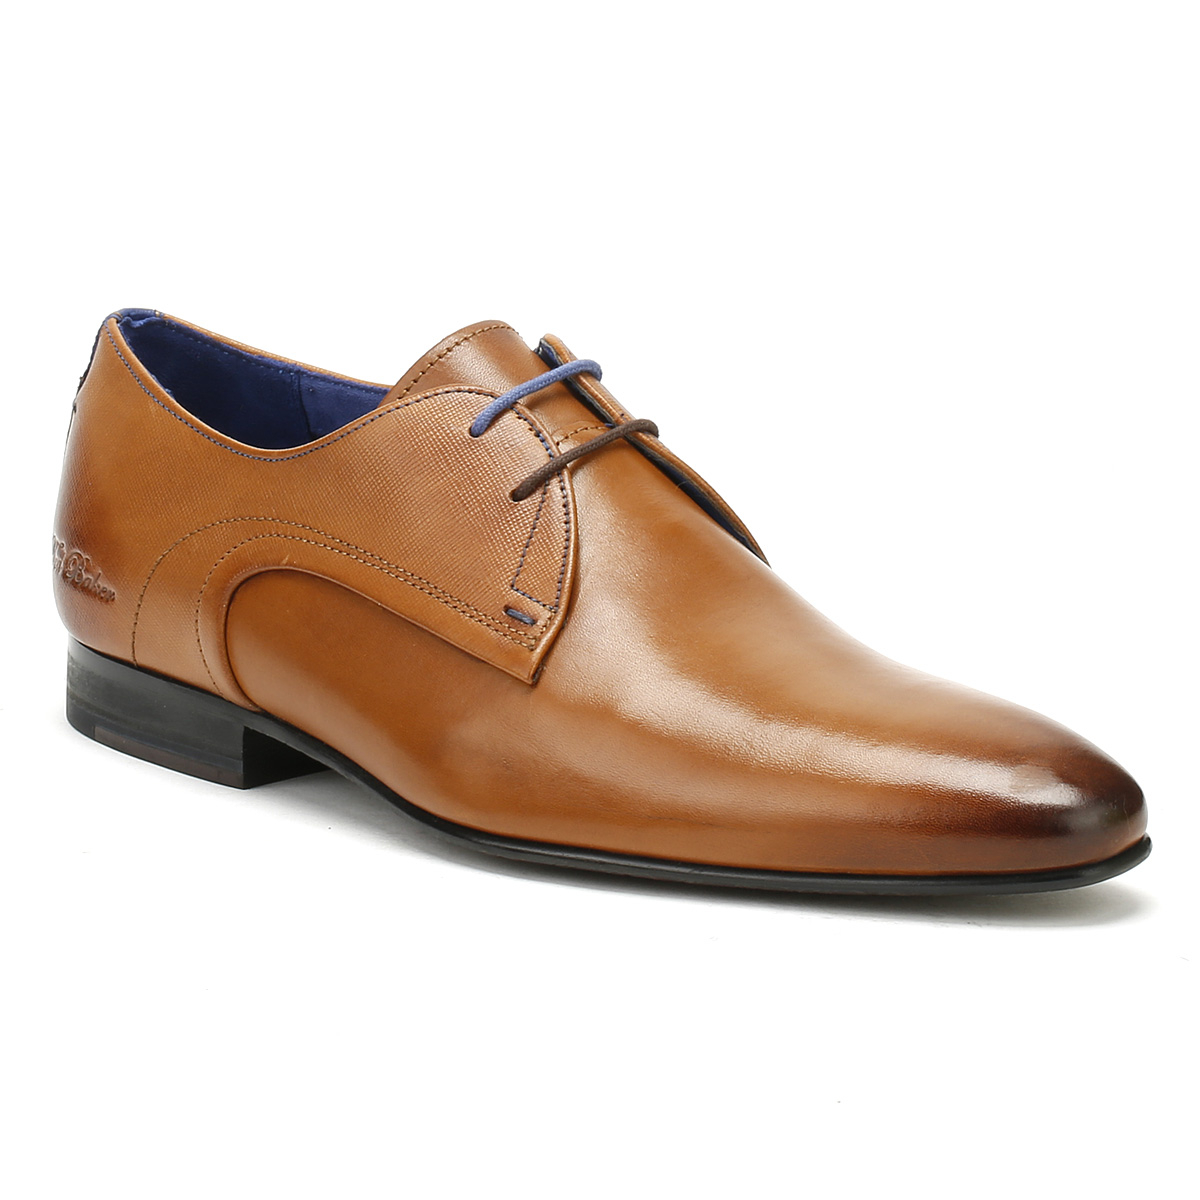 4ec43fea6 Ted Baker Mens Peair Formal Shoes Tan Brown Leather Lace Up Smarts ...